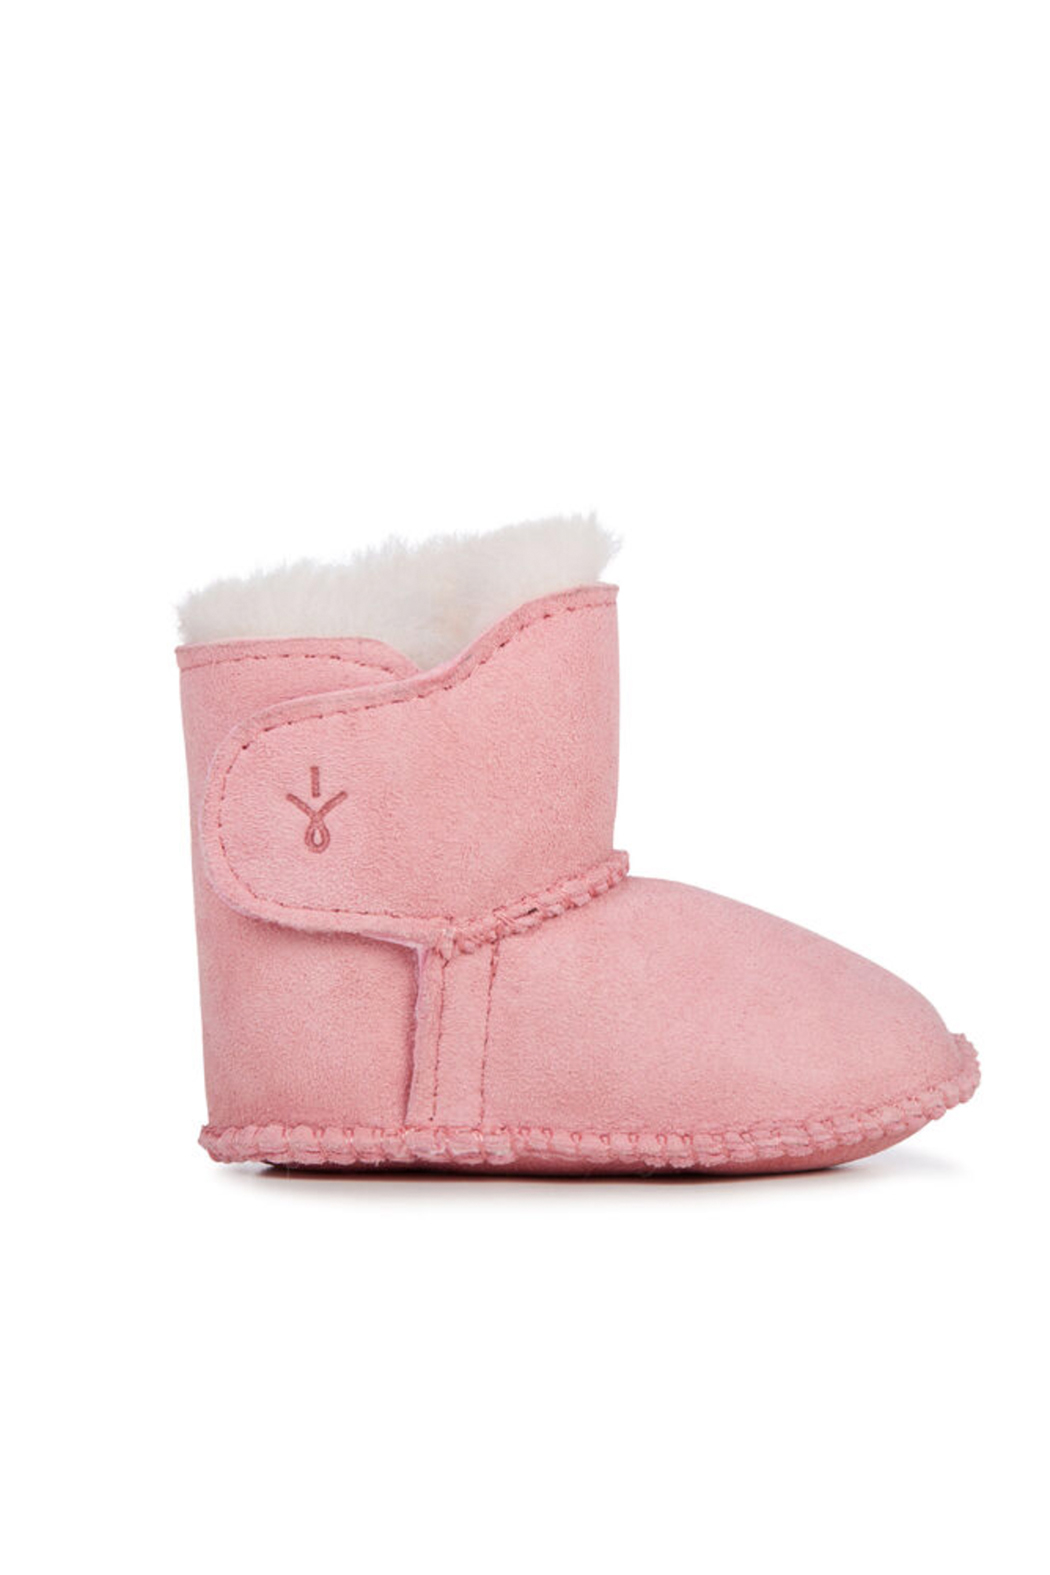 Emu Australia Baby Bootie - Baby Pink - Front Cropped Image